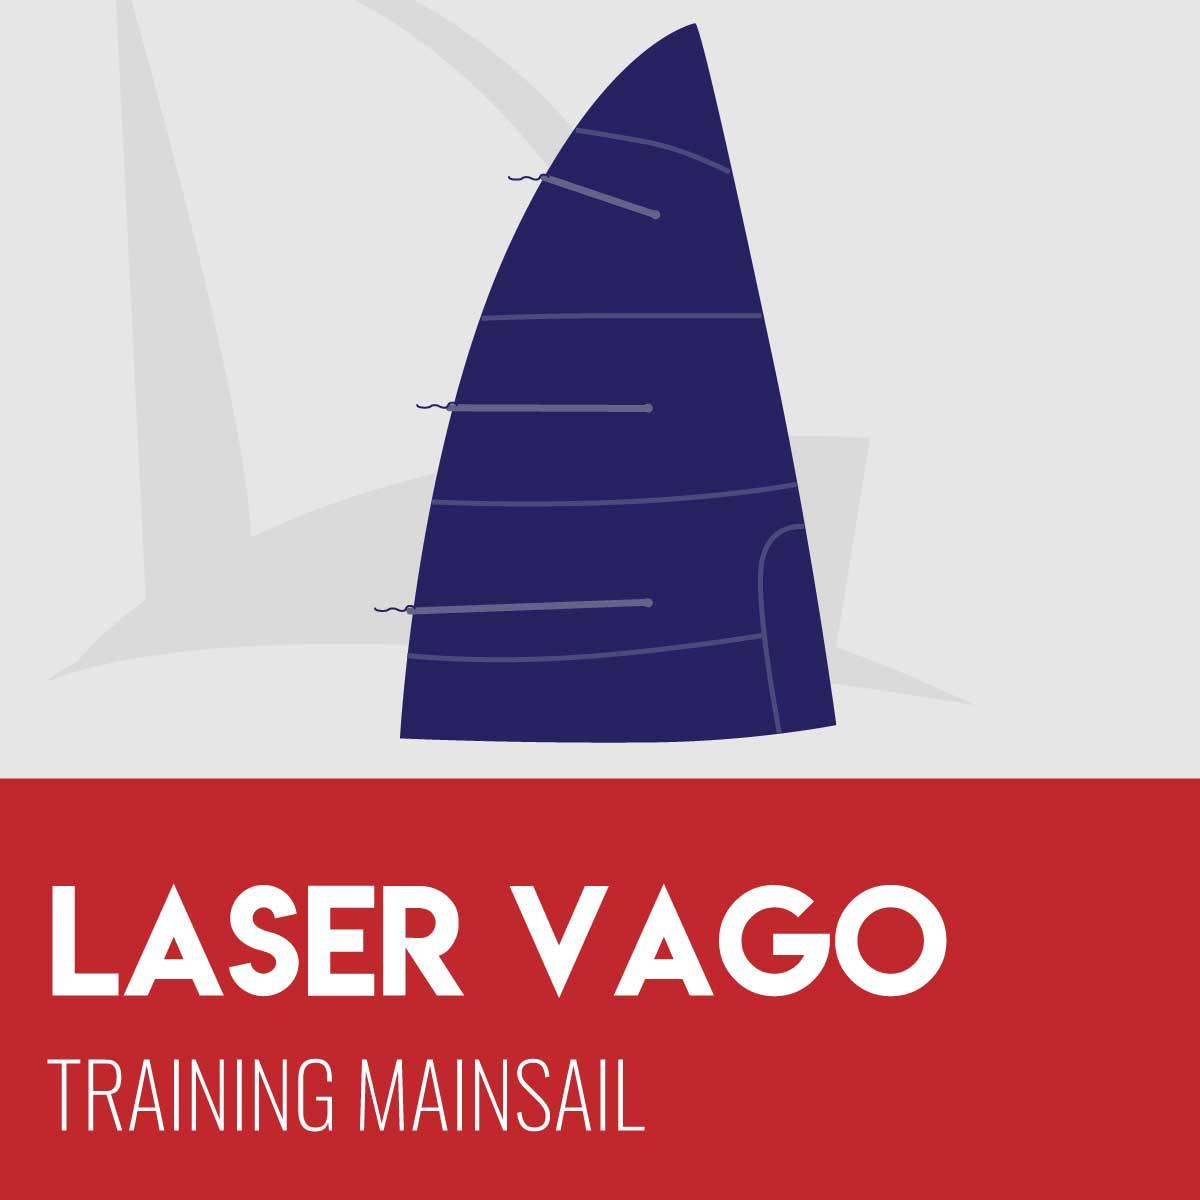 Laser Vago Training Mainsail